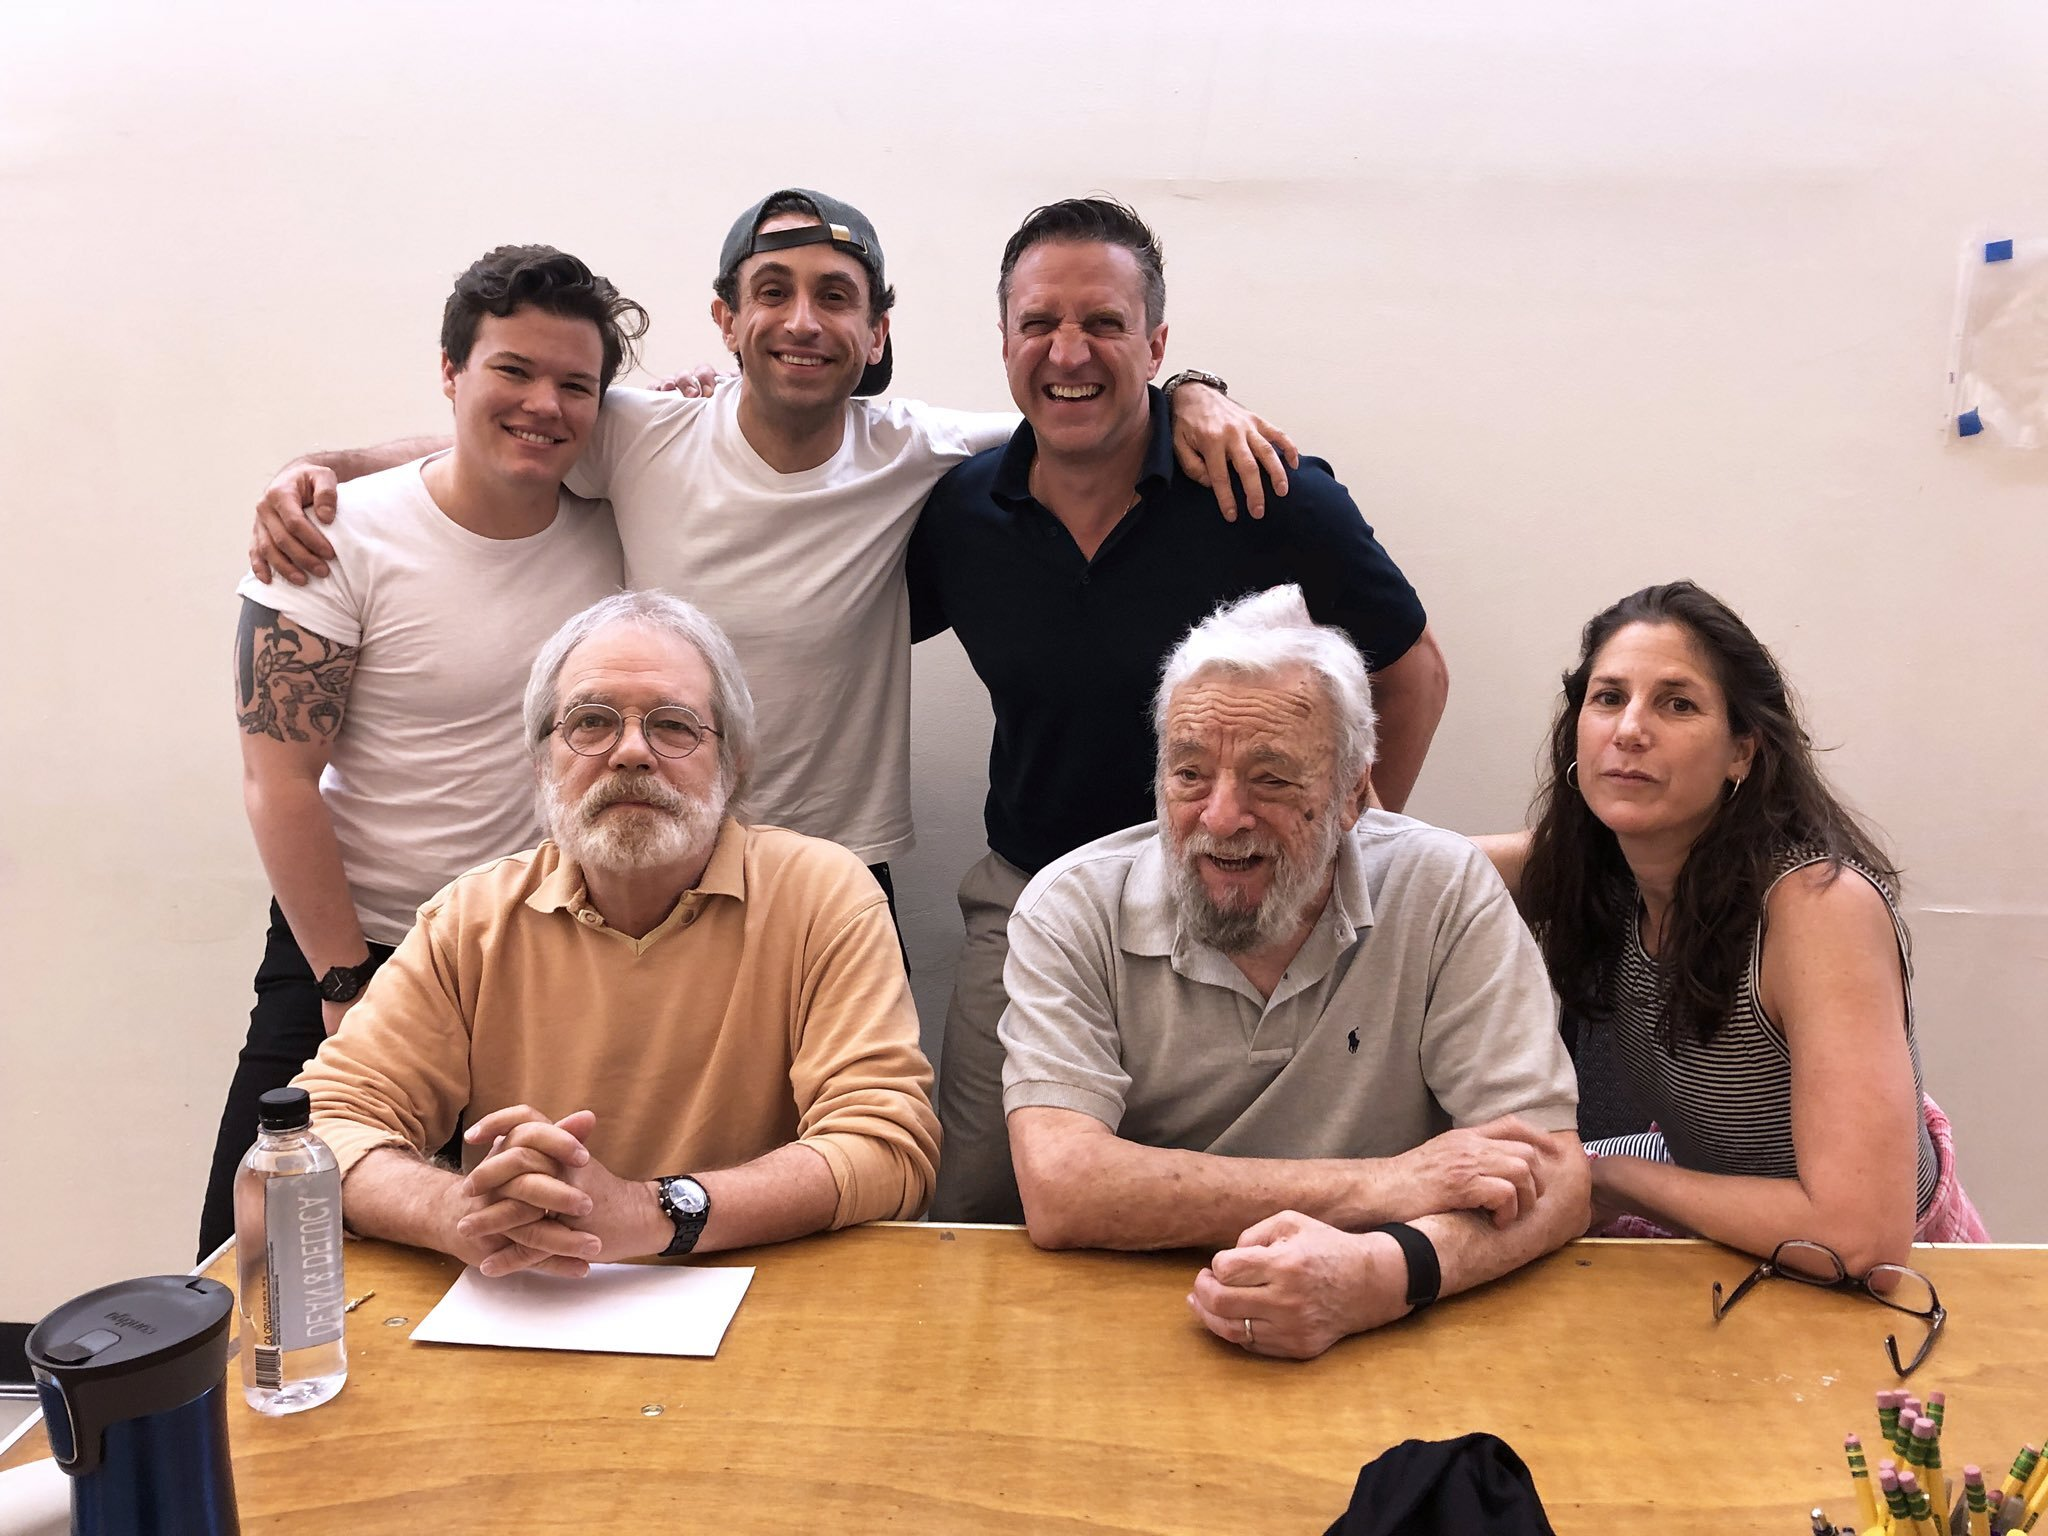 Captured a rare photo of Stephen Sondheim smiling along with members of the cast and creative team for Encores! Off-Center Road Show